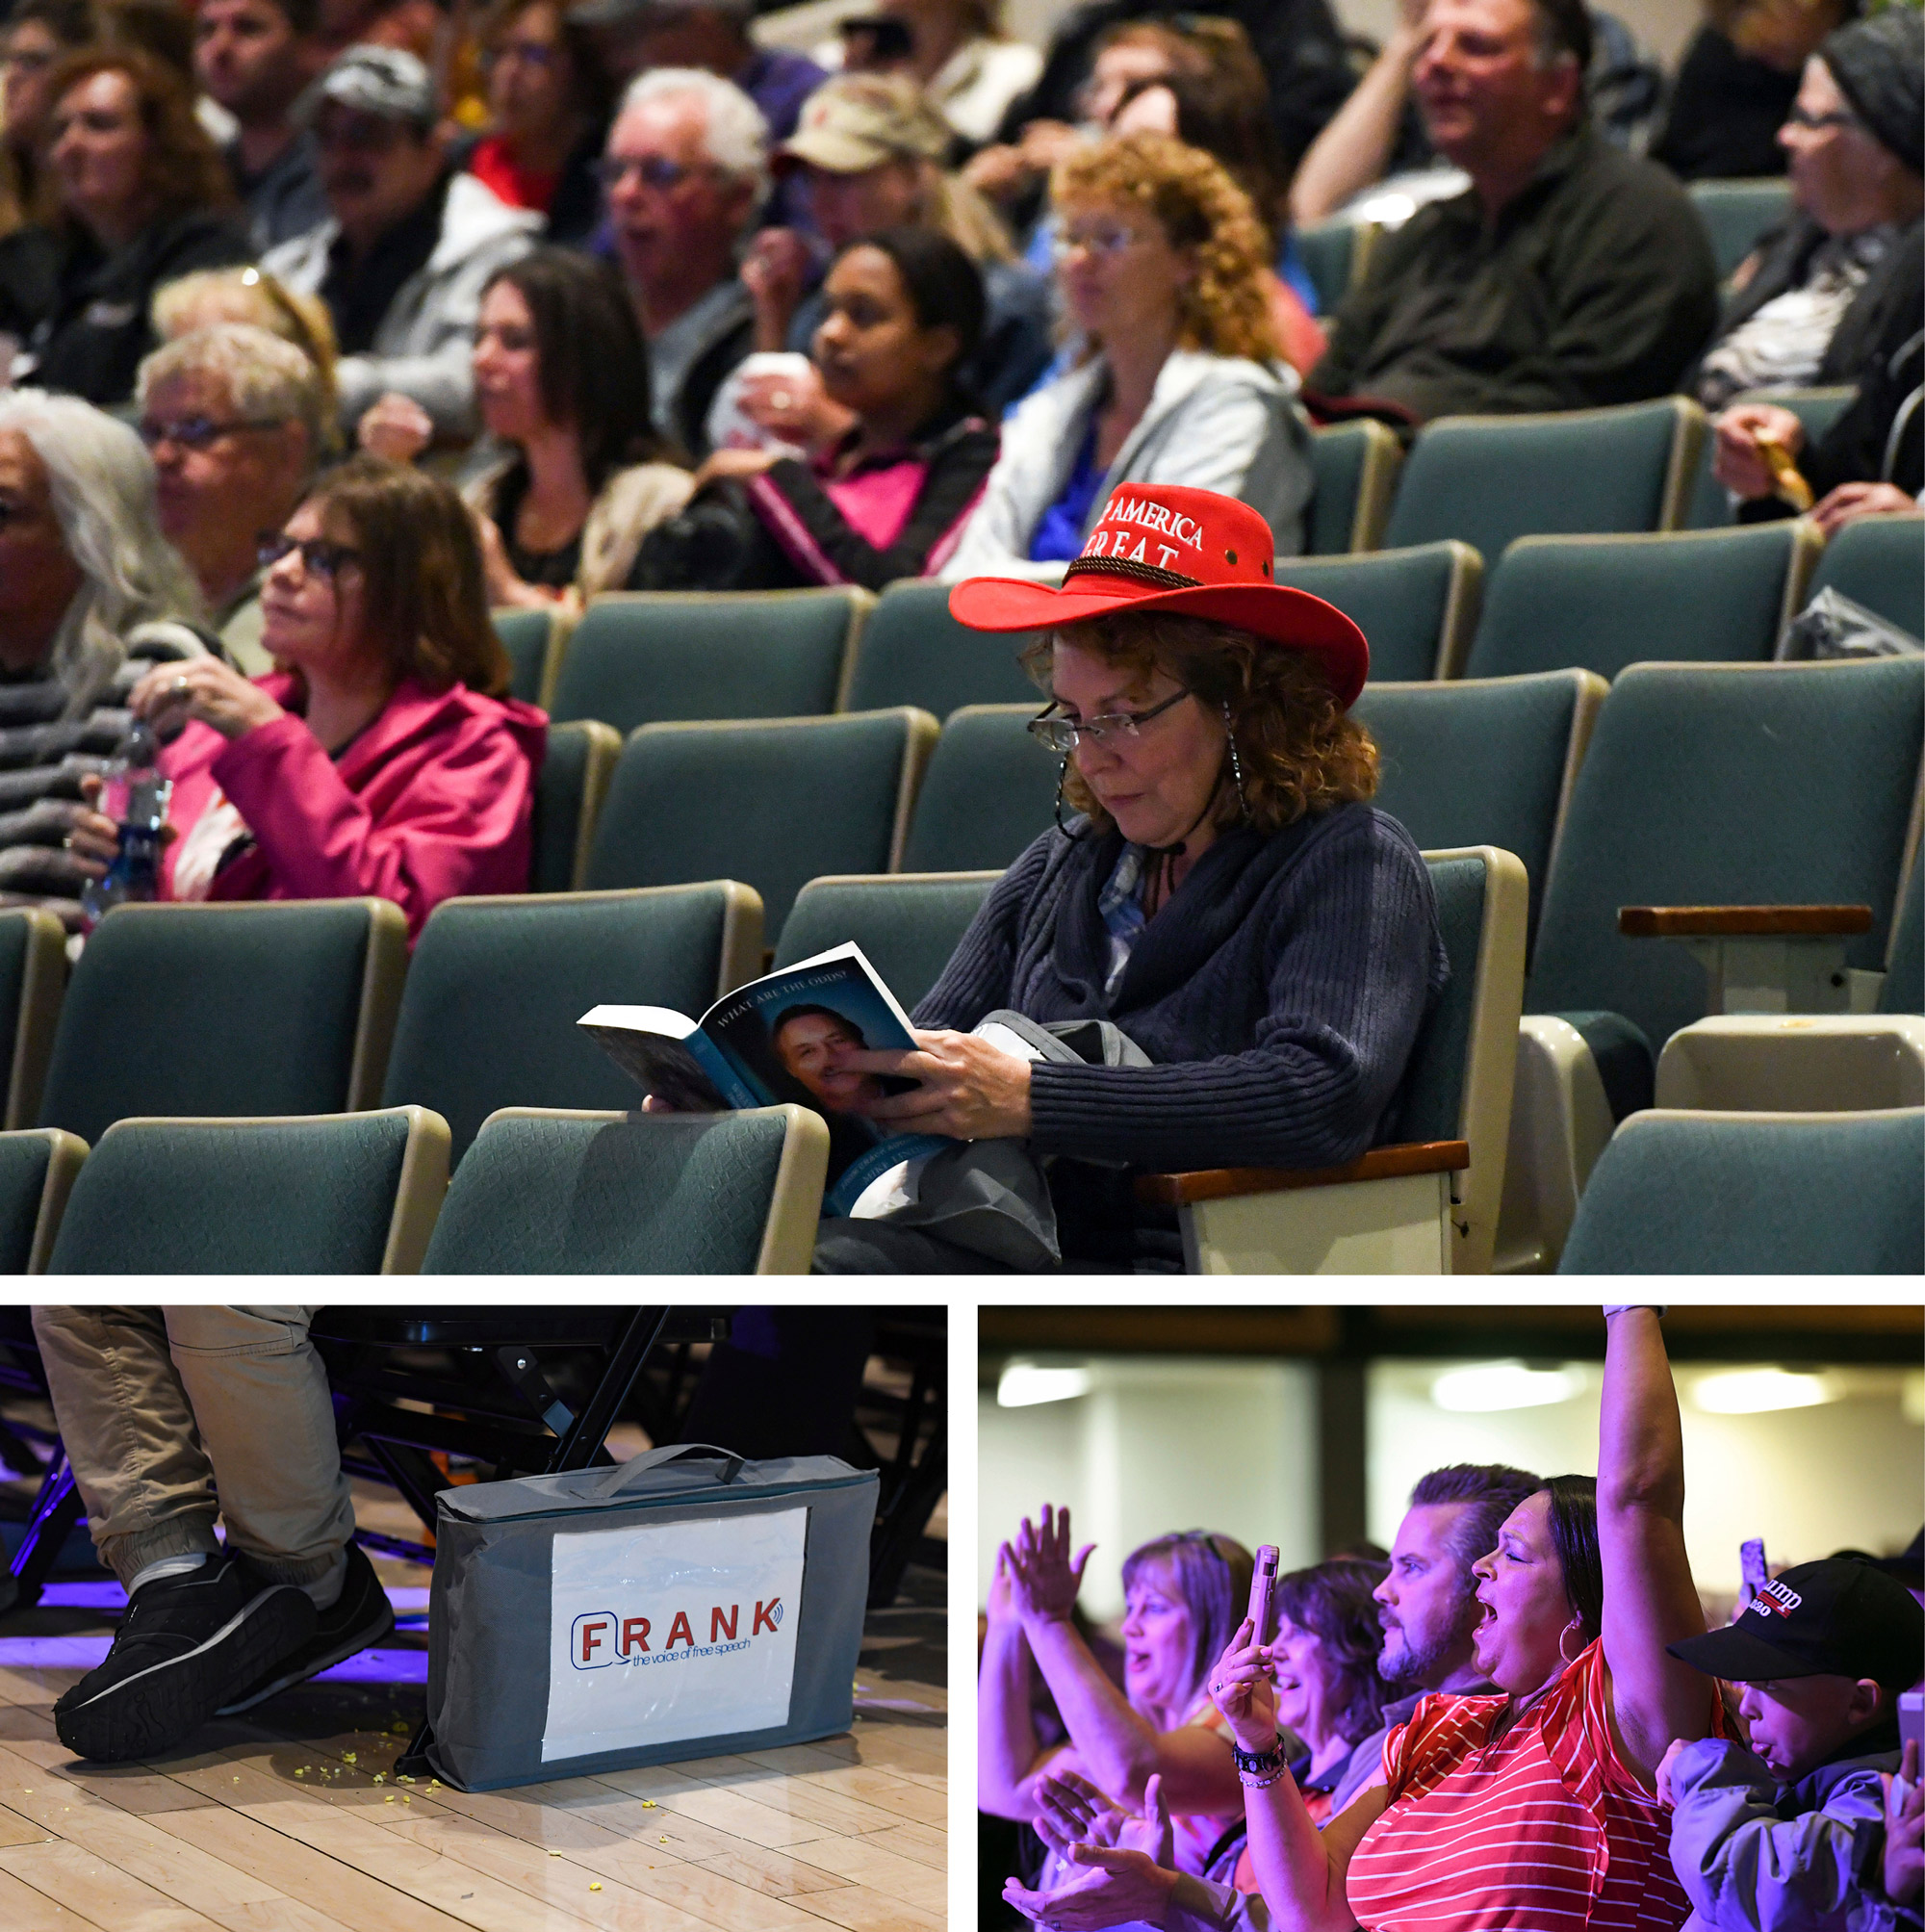 The May launch event for Lindell's website, Frank, in Mitchell, S.D., drew fervent supporters but didn't fill the Corn Palace. Last weekend, a second Frank event included Donald Trump himself making a video appearance on a Jumbotron.